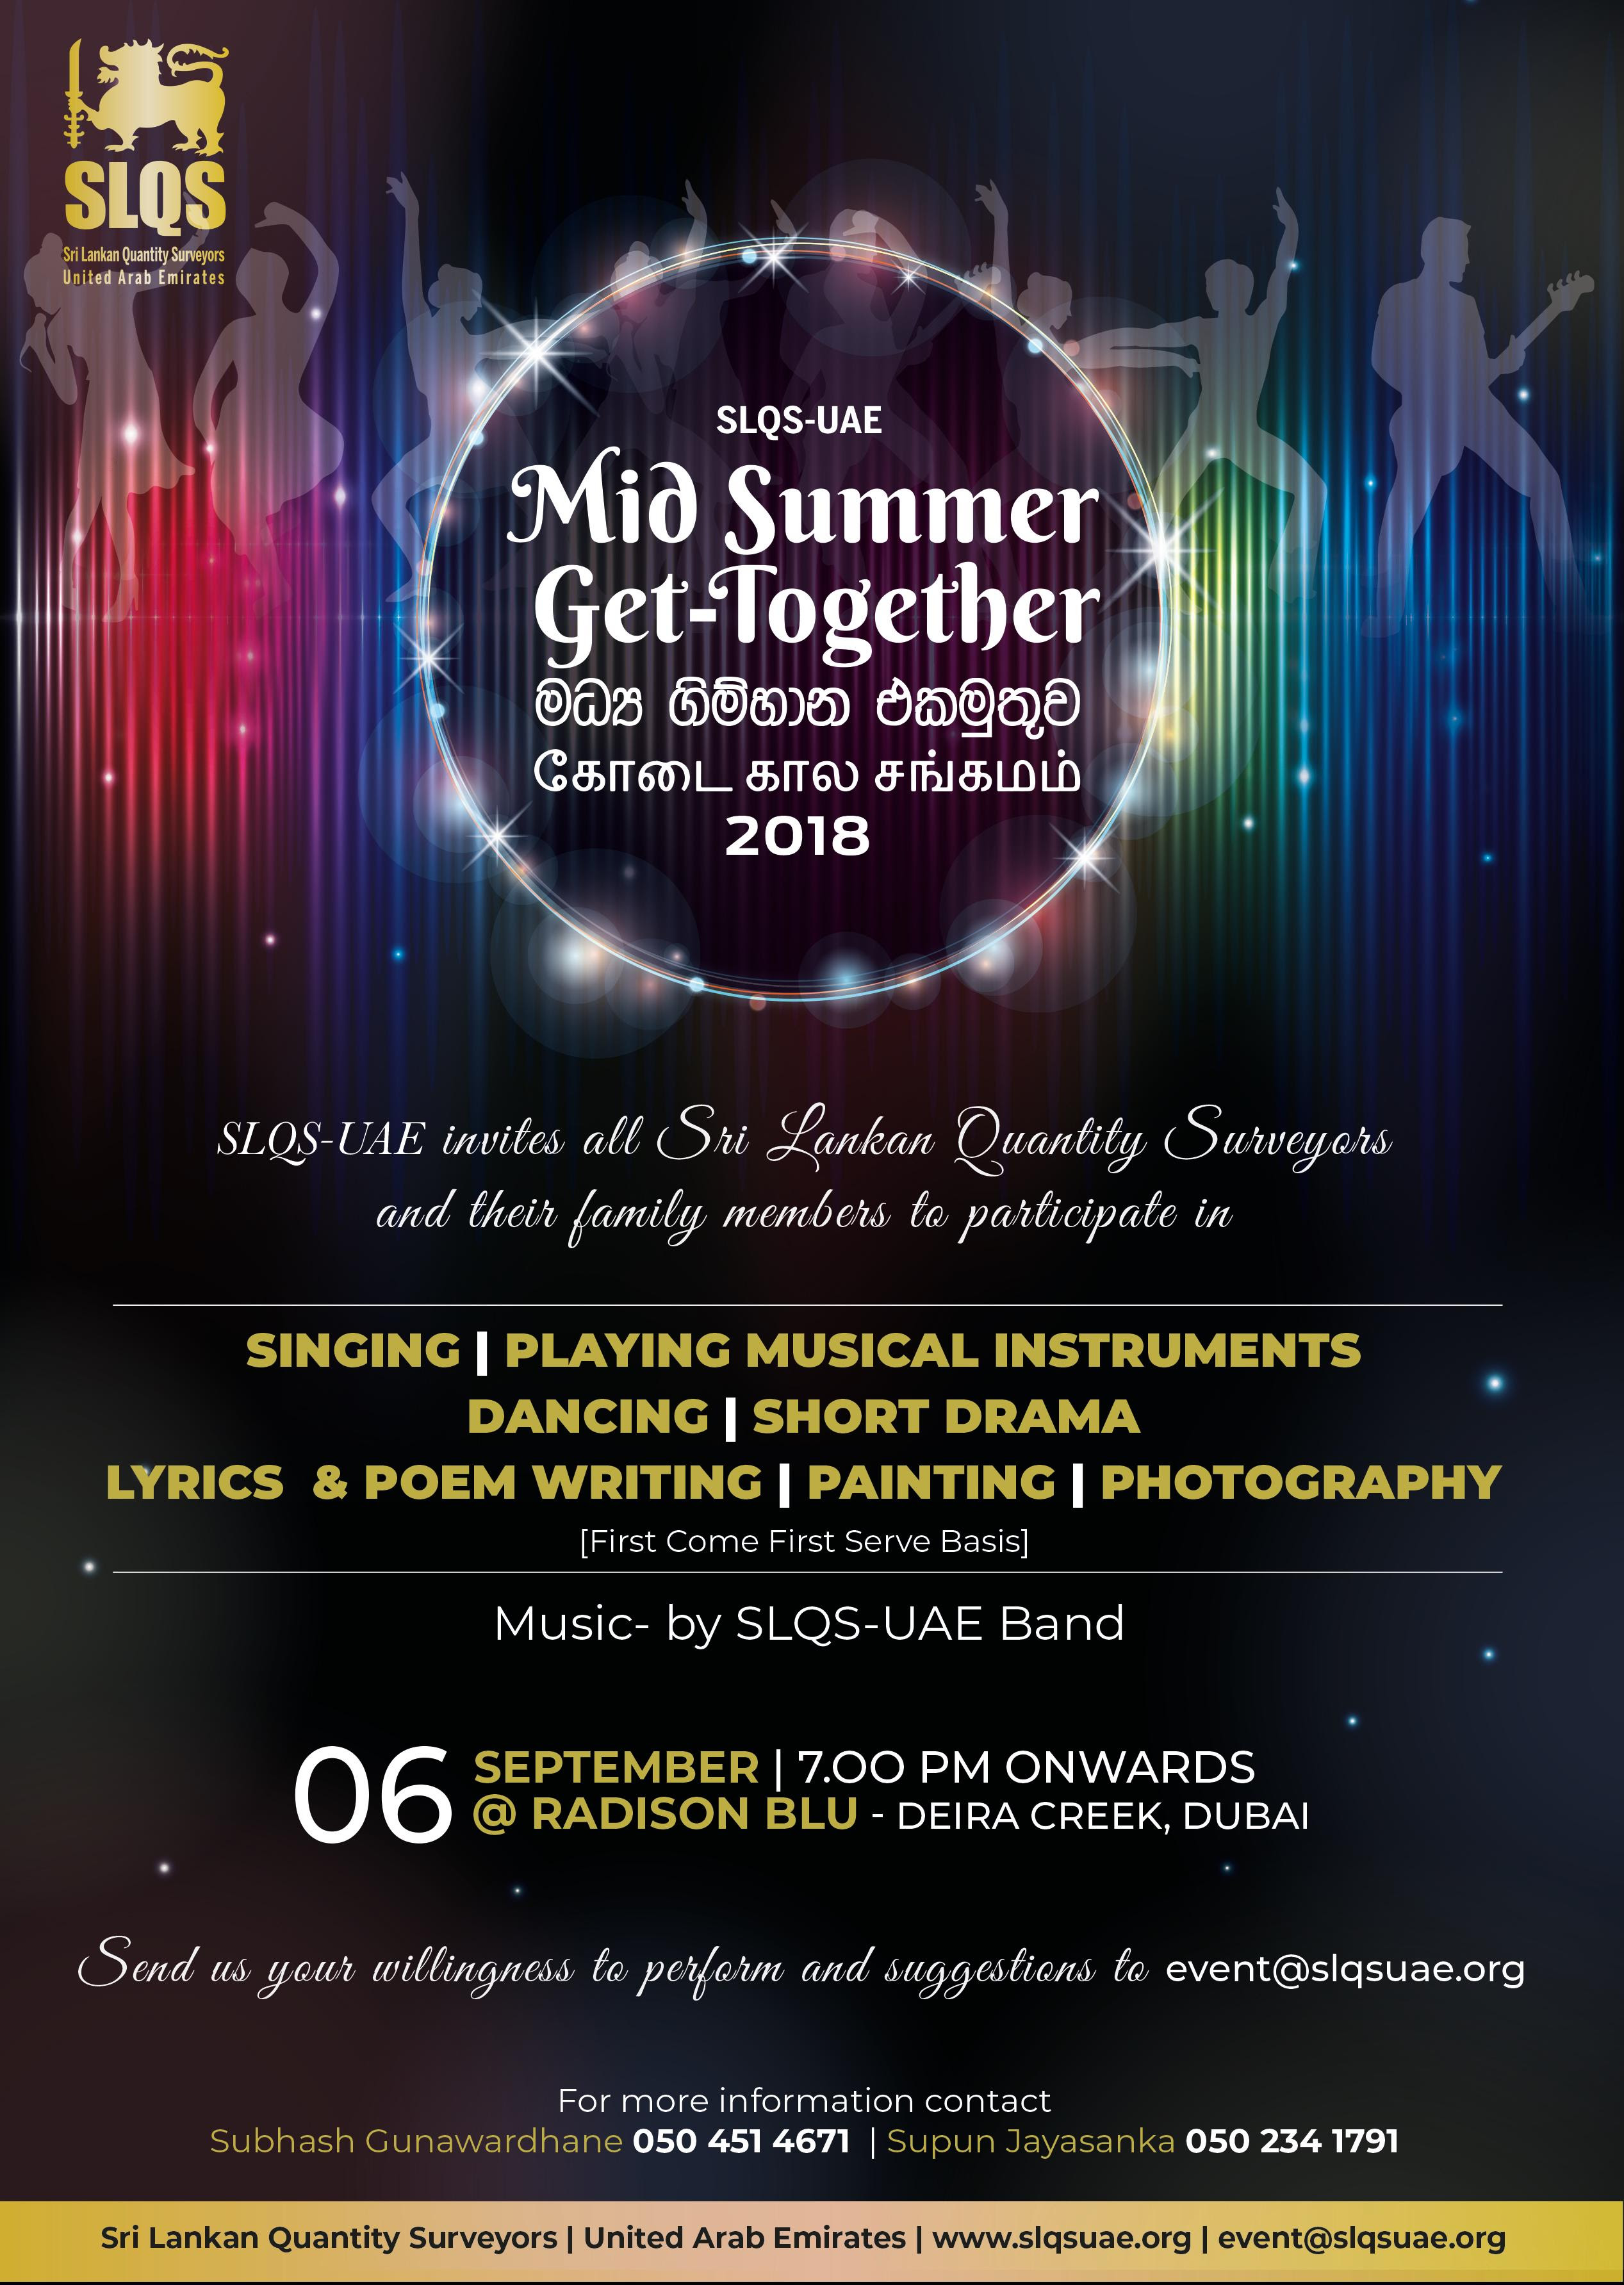 Mid Summer Get-together 2018